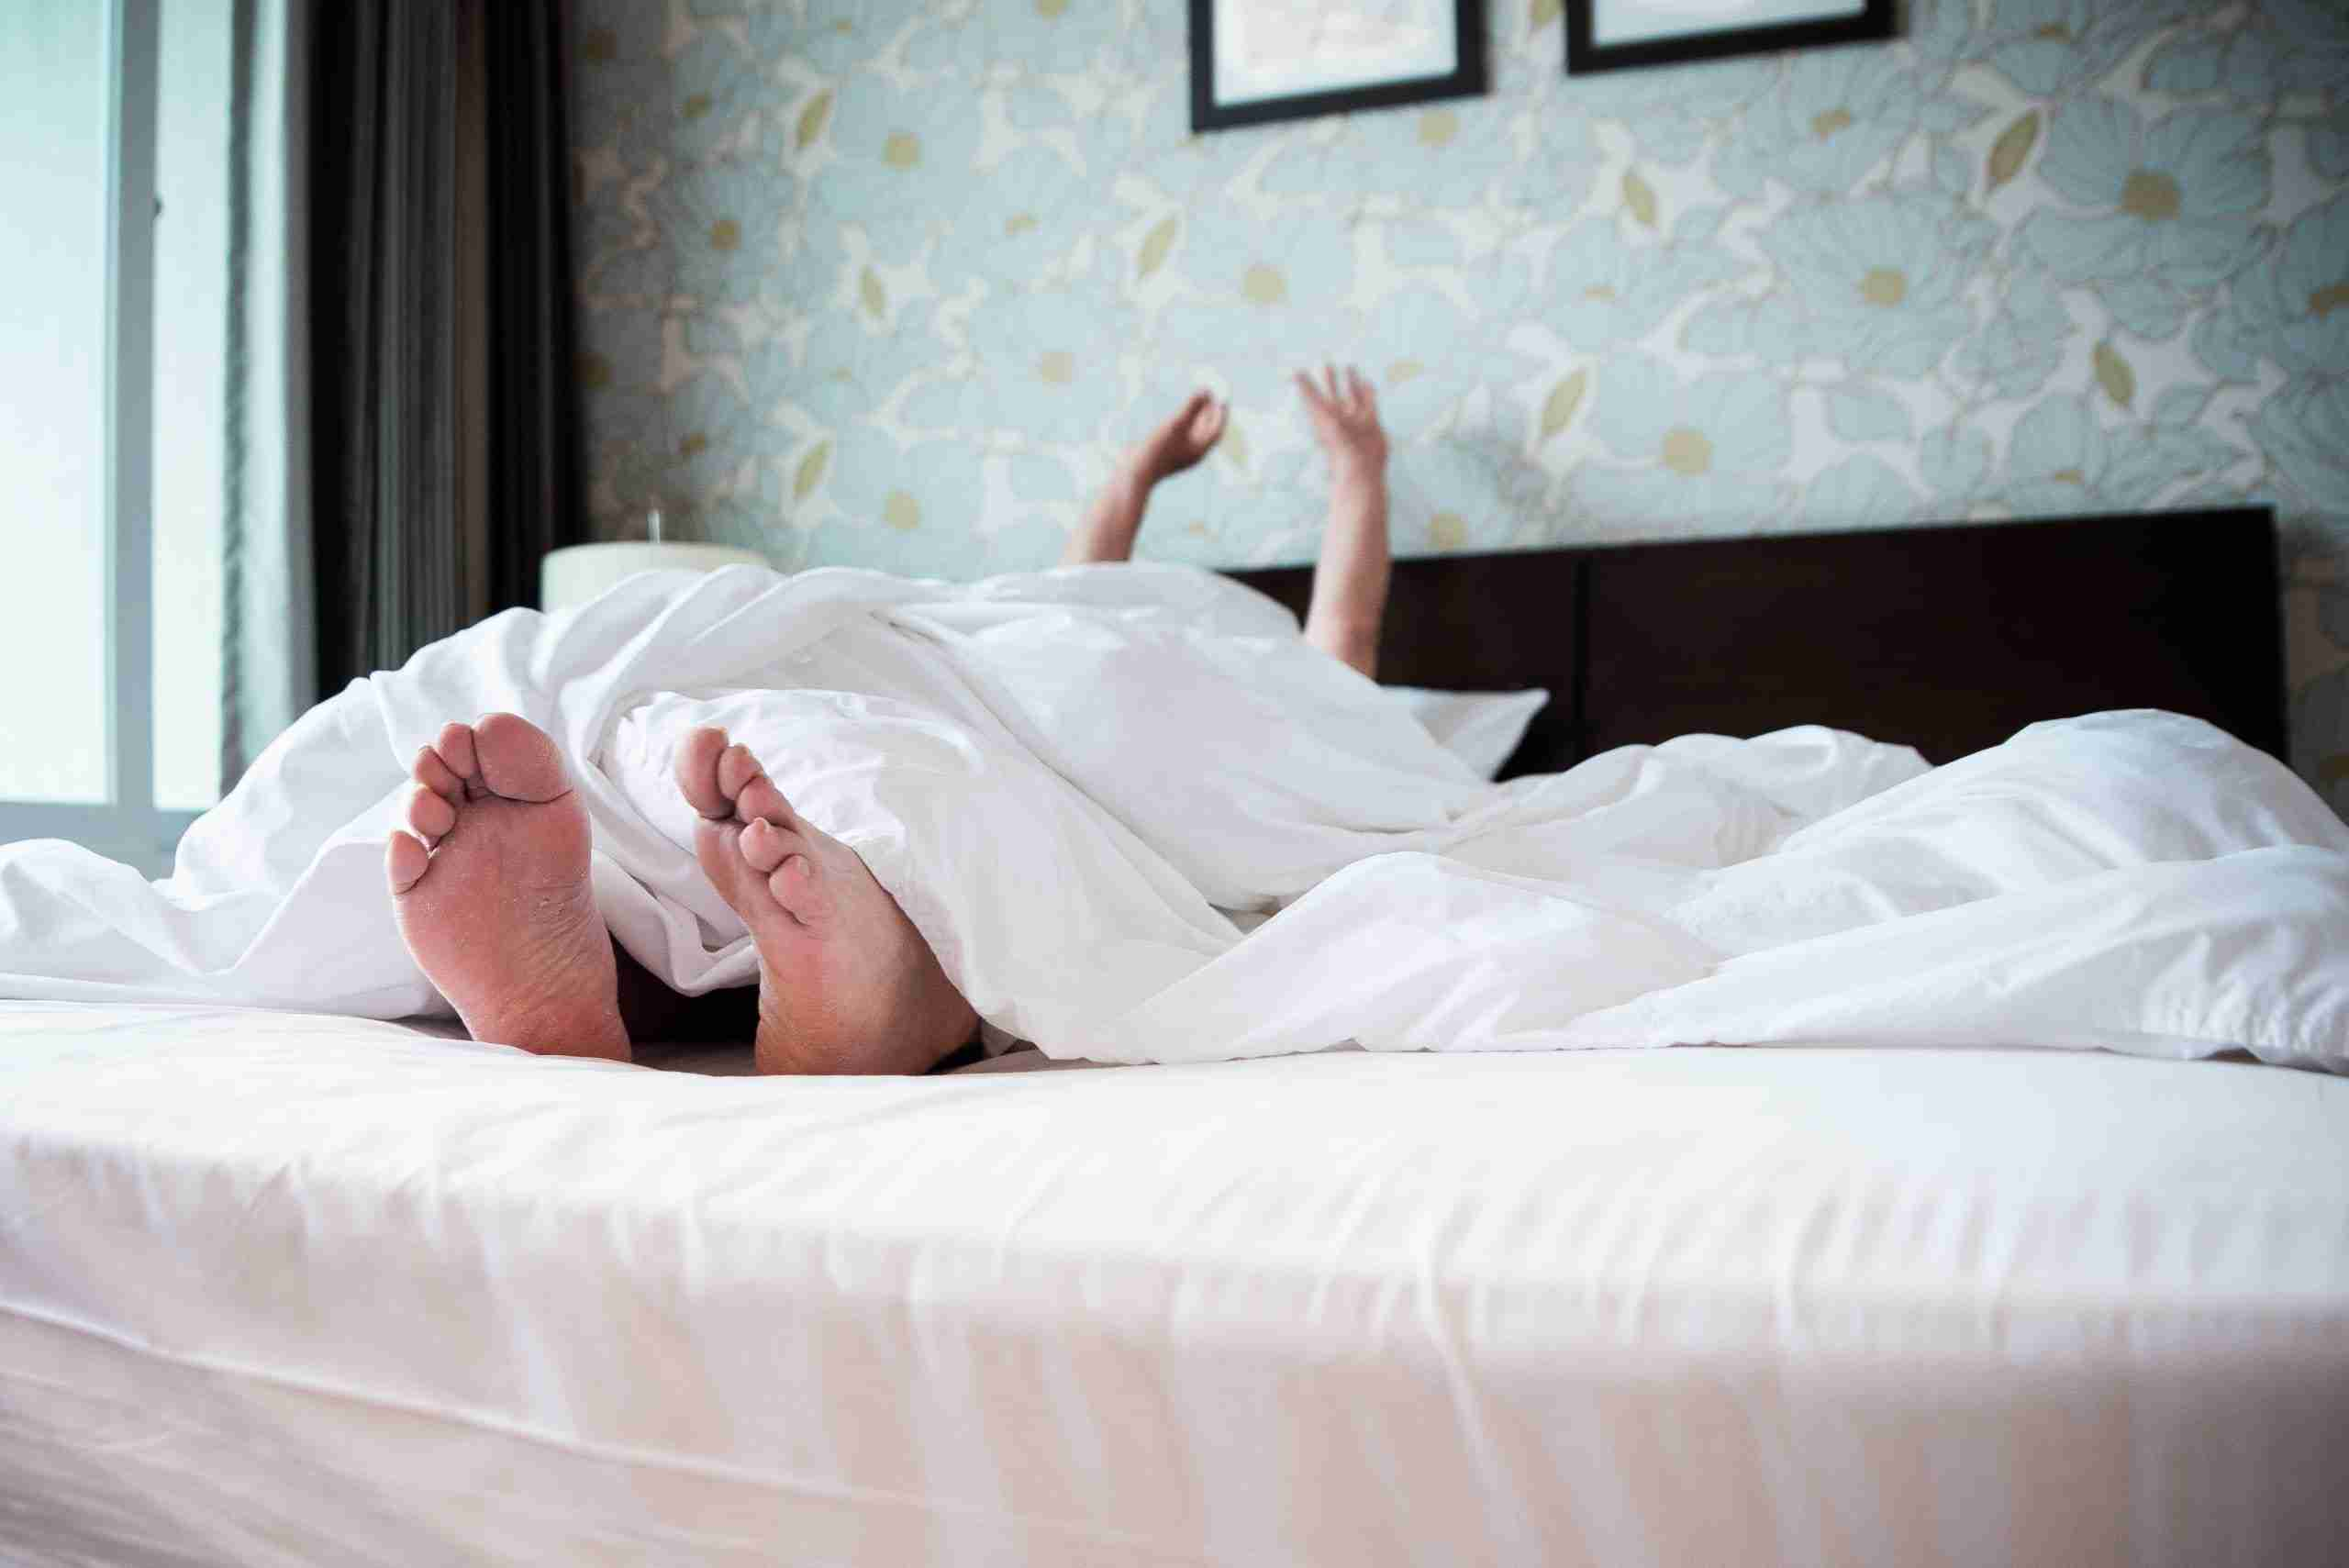 Person waking up in white bedsheets